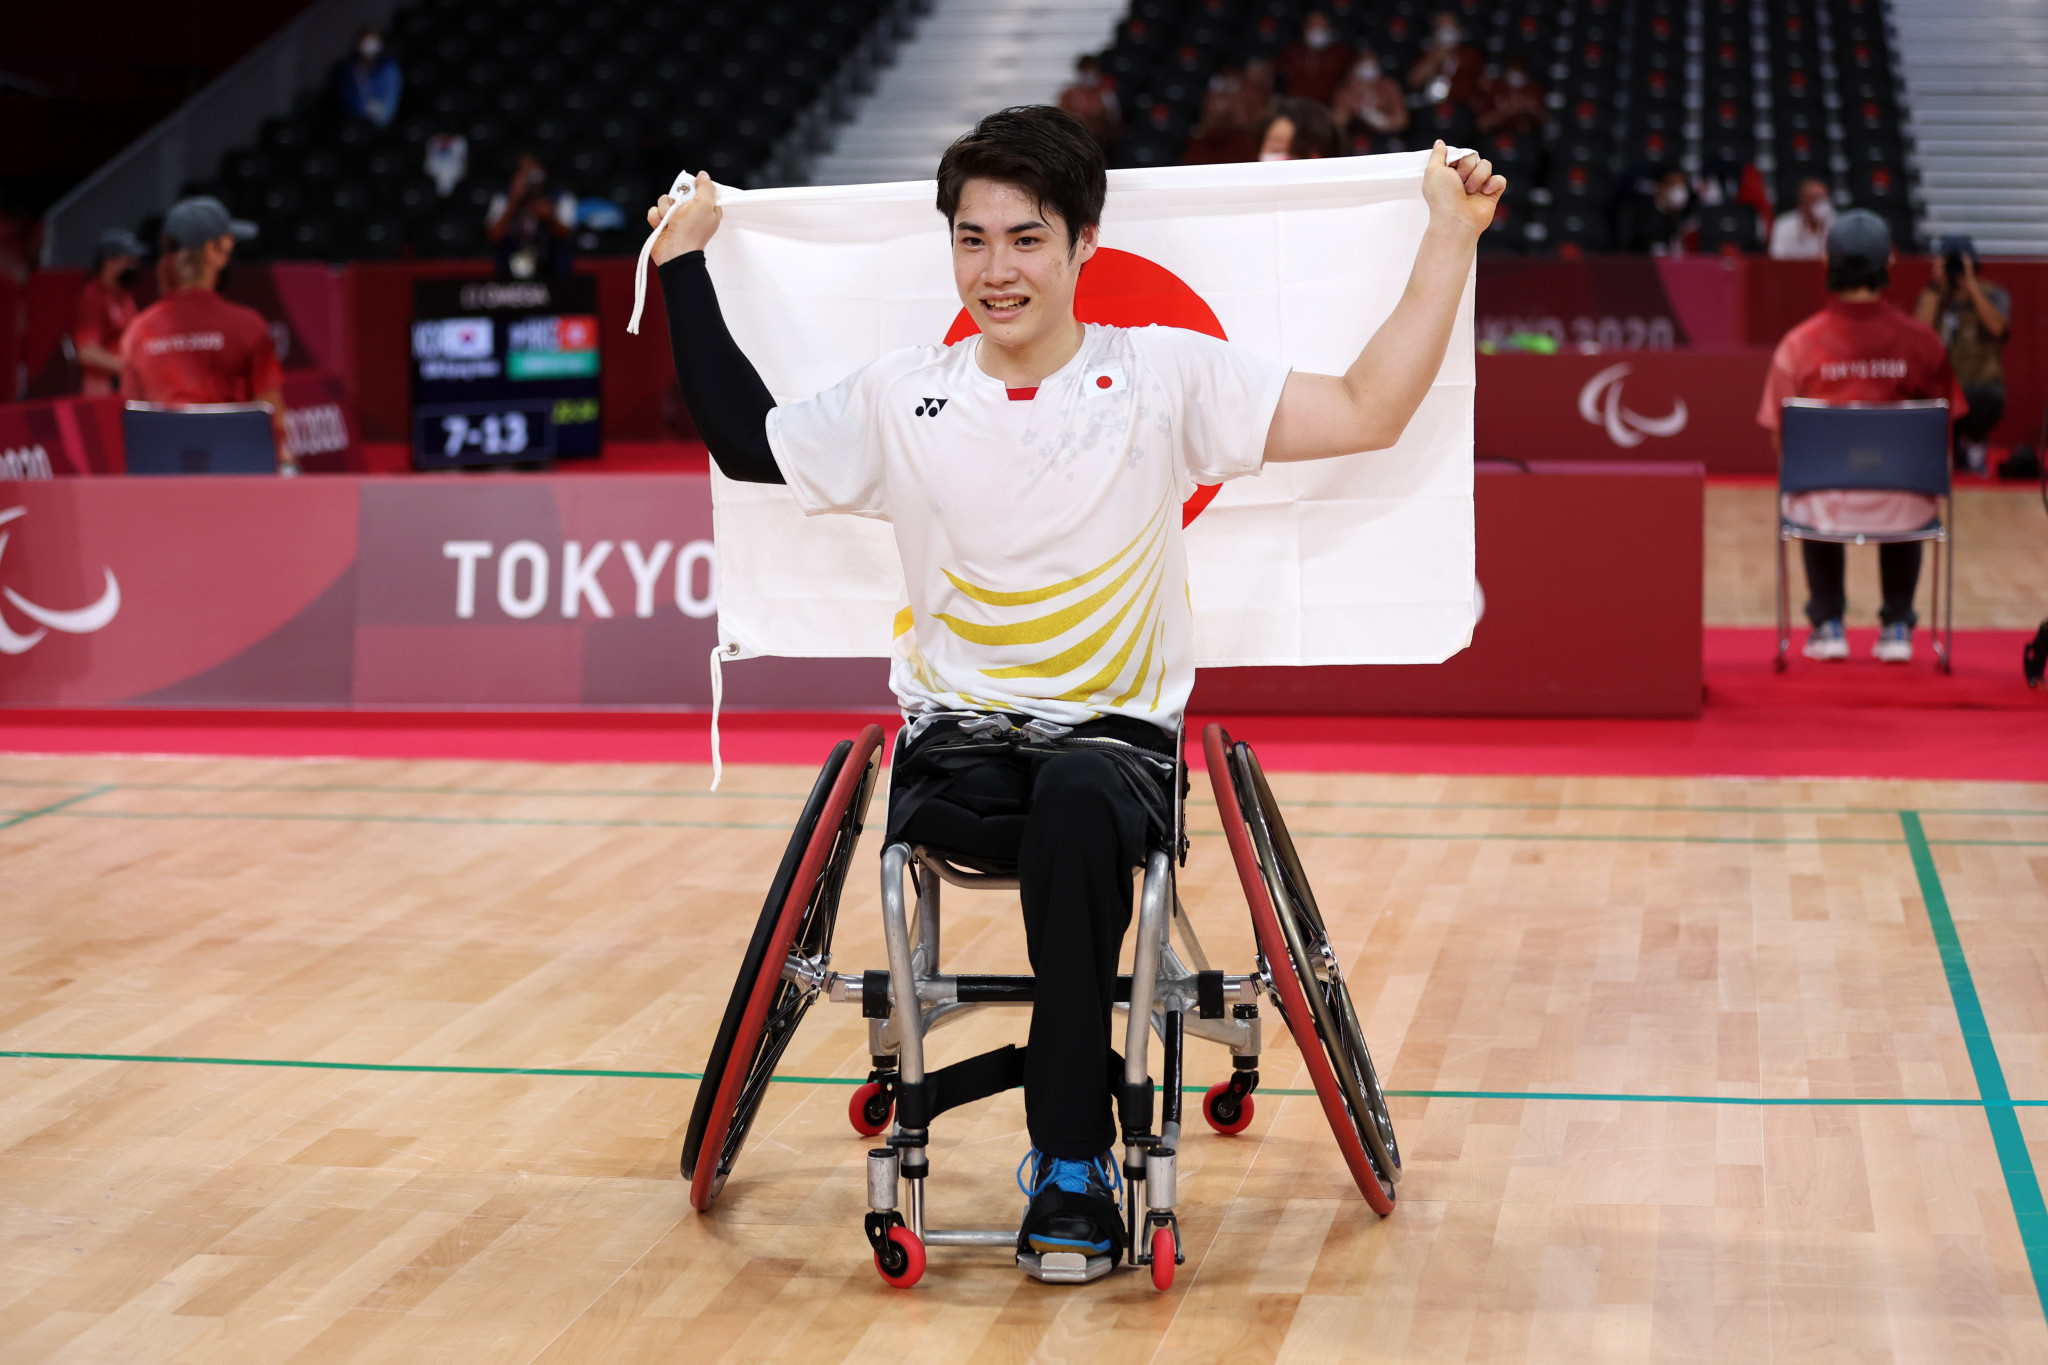 Daiki Kajiwara delivered the first of two Japanese gold medals on the final day of badminton competition at the Paralympic Games at Tokyo 2020 ©Getty Images